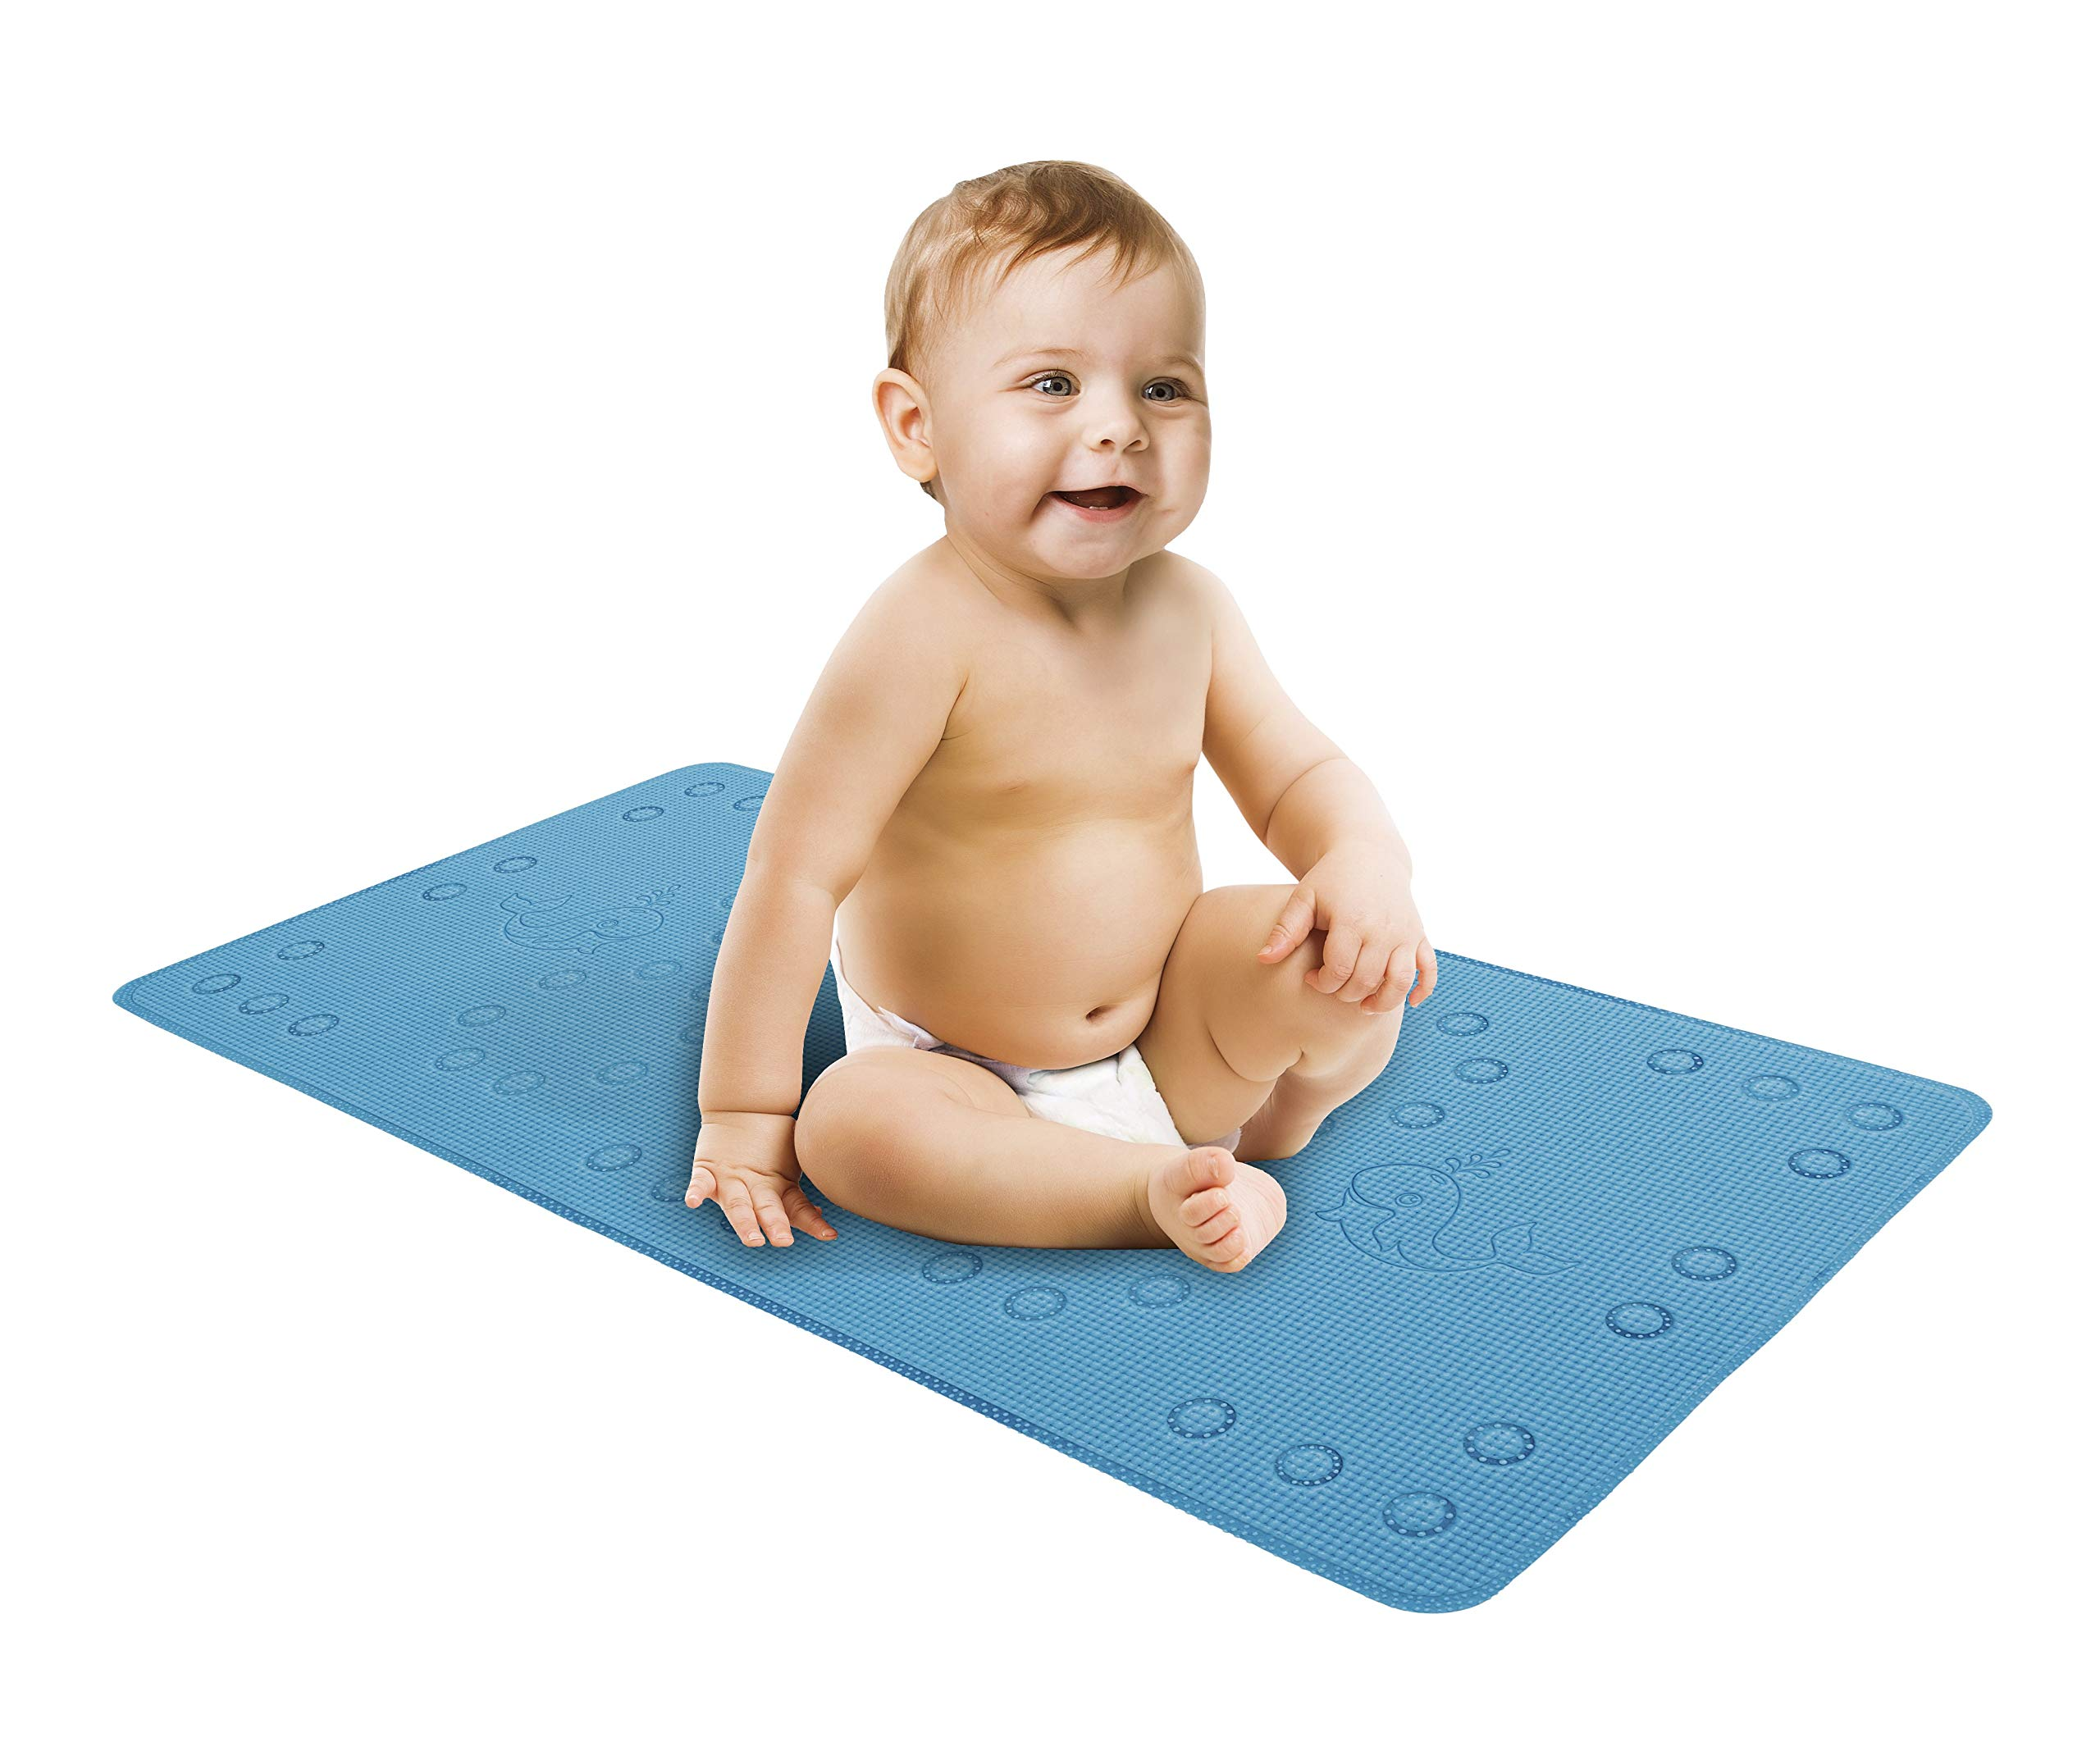 Baby Bath Mat for tub or Shower - Cushioned & Textured for Comfort and Safety, Large Non Slip Resistant bathmats for Babies, Children, Toddlers - Strong Nonskid Suction Cup Grip - Whale Design in Blue